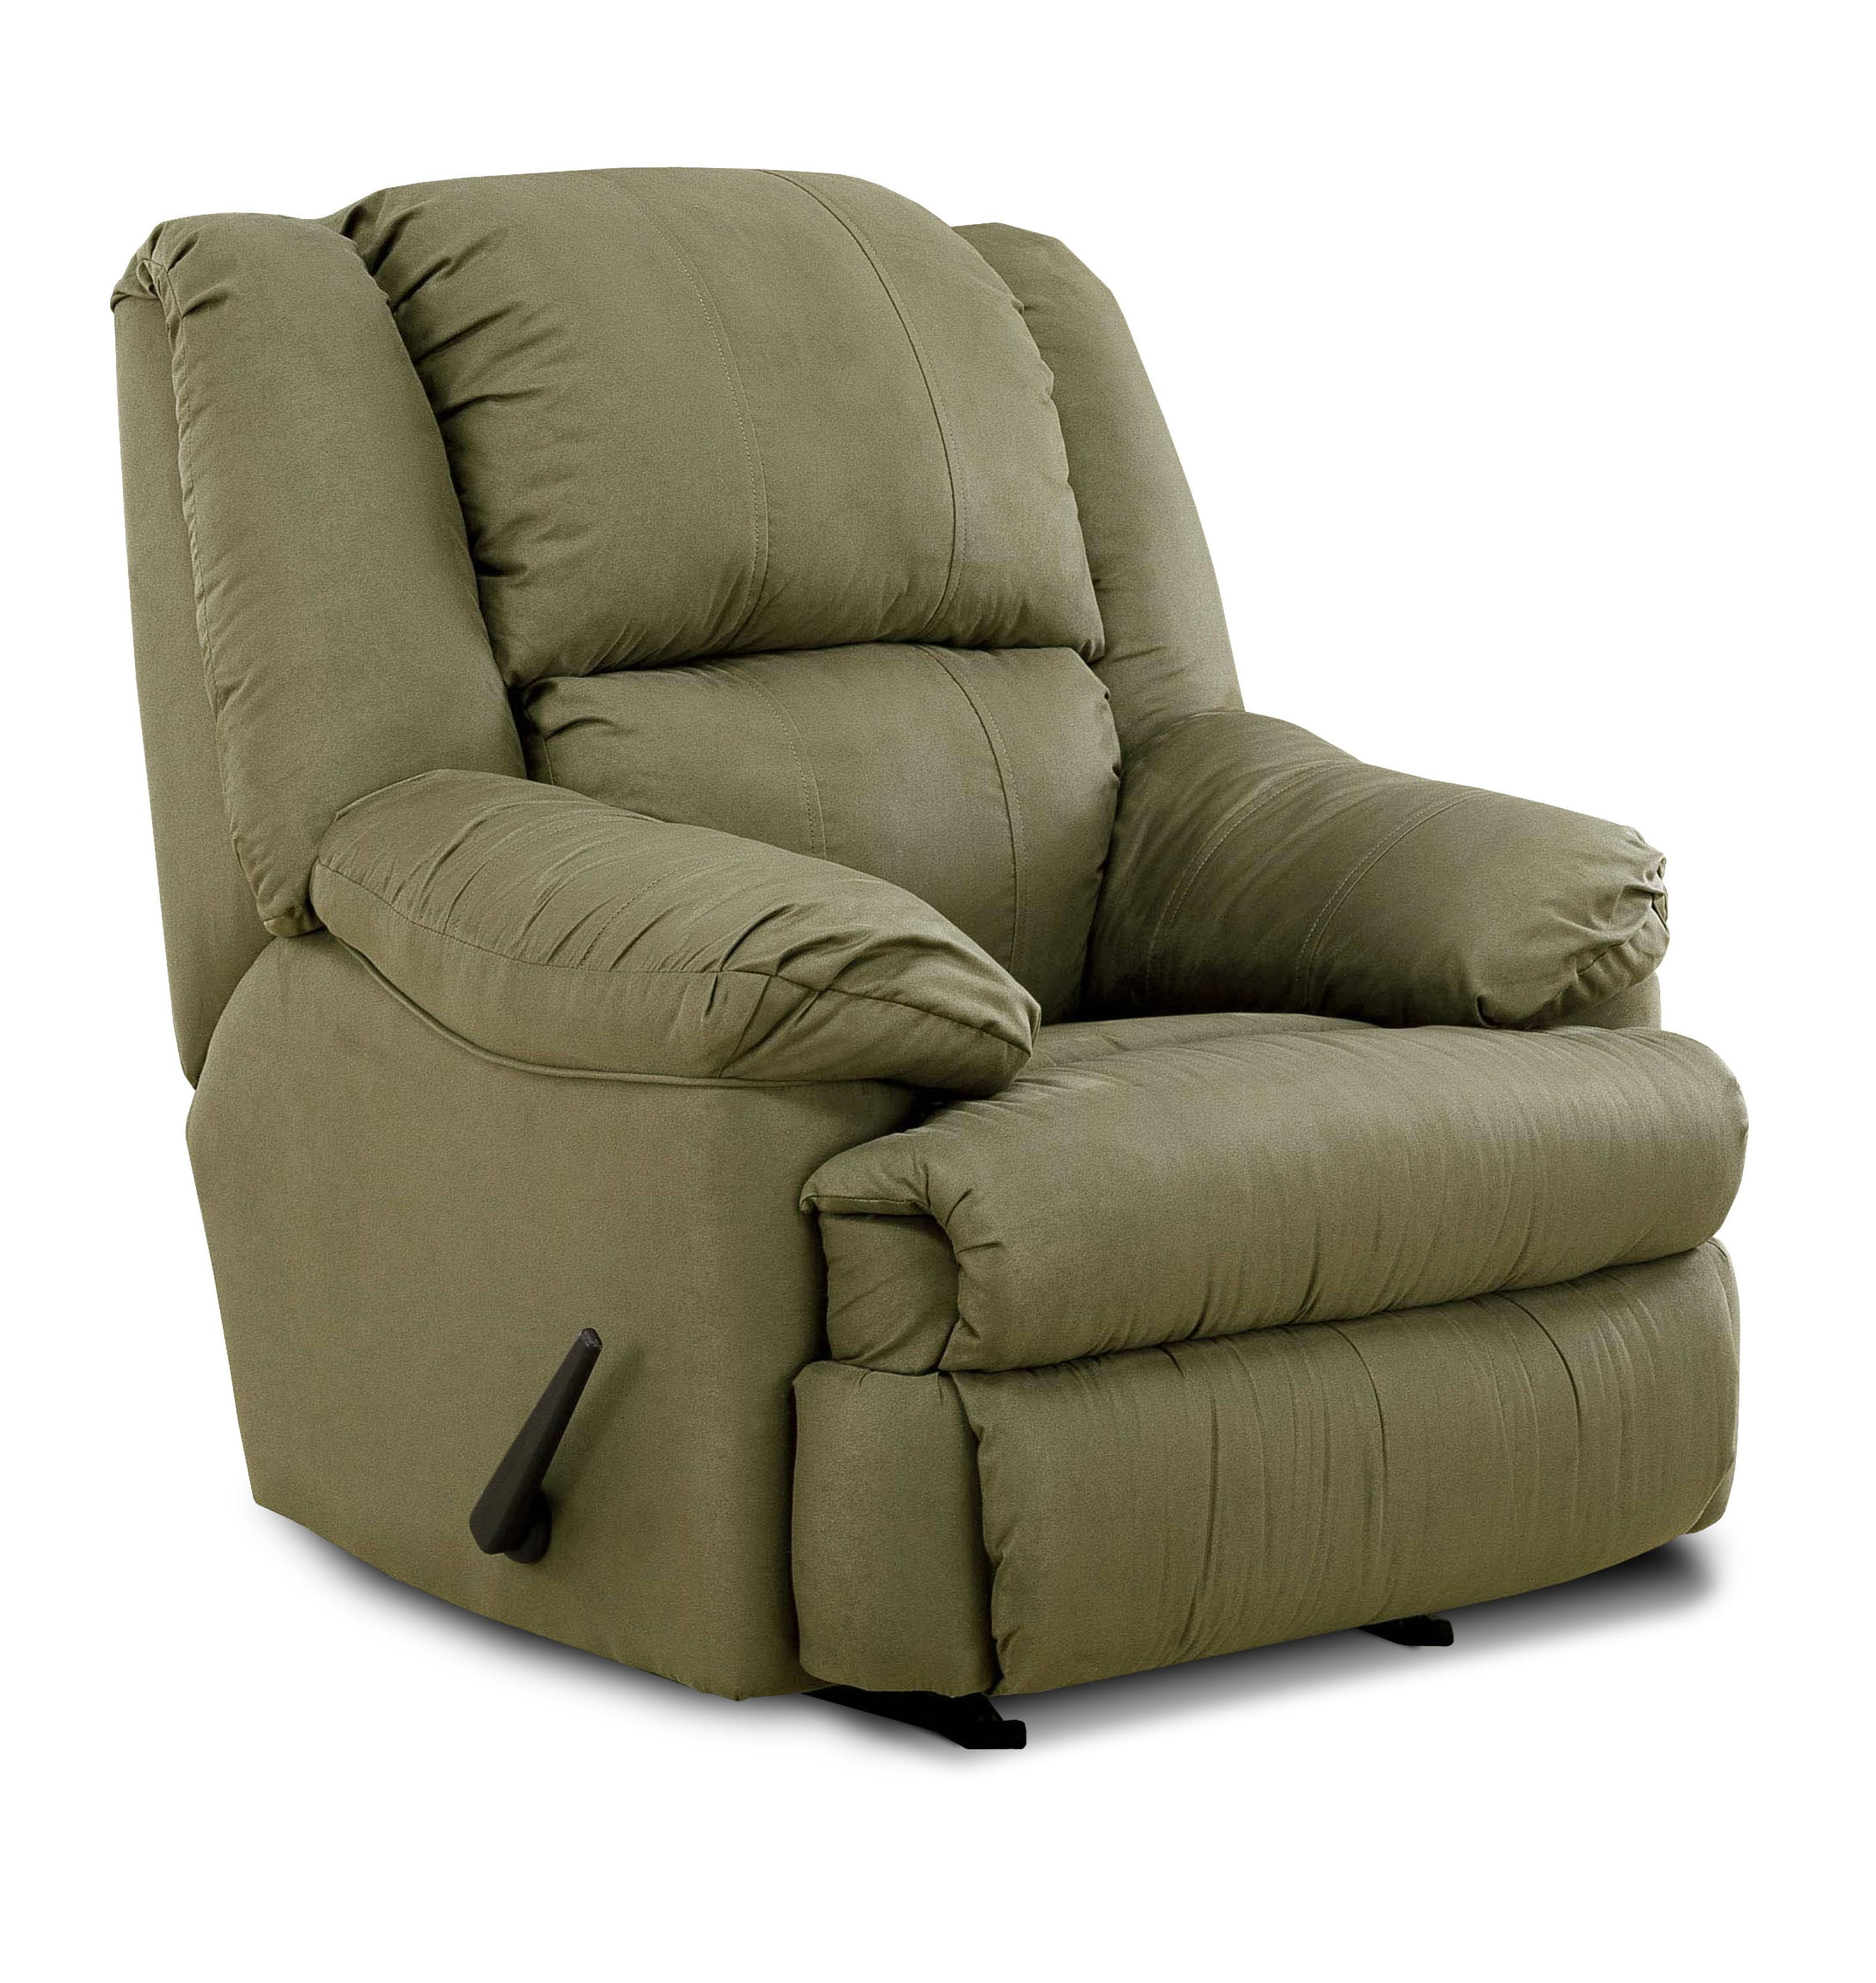 United Furniture Industries 604 Casual Rocker Recliner - Item Number: 604 Rocker Hazel